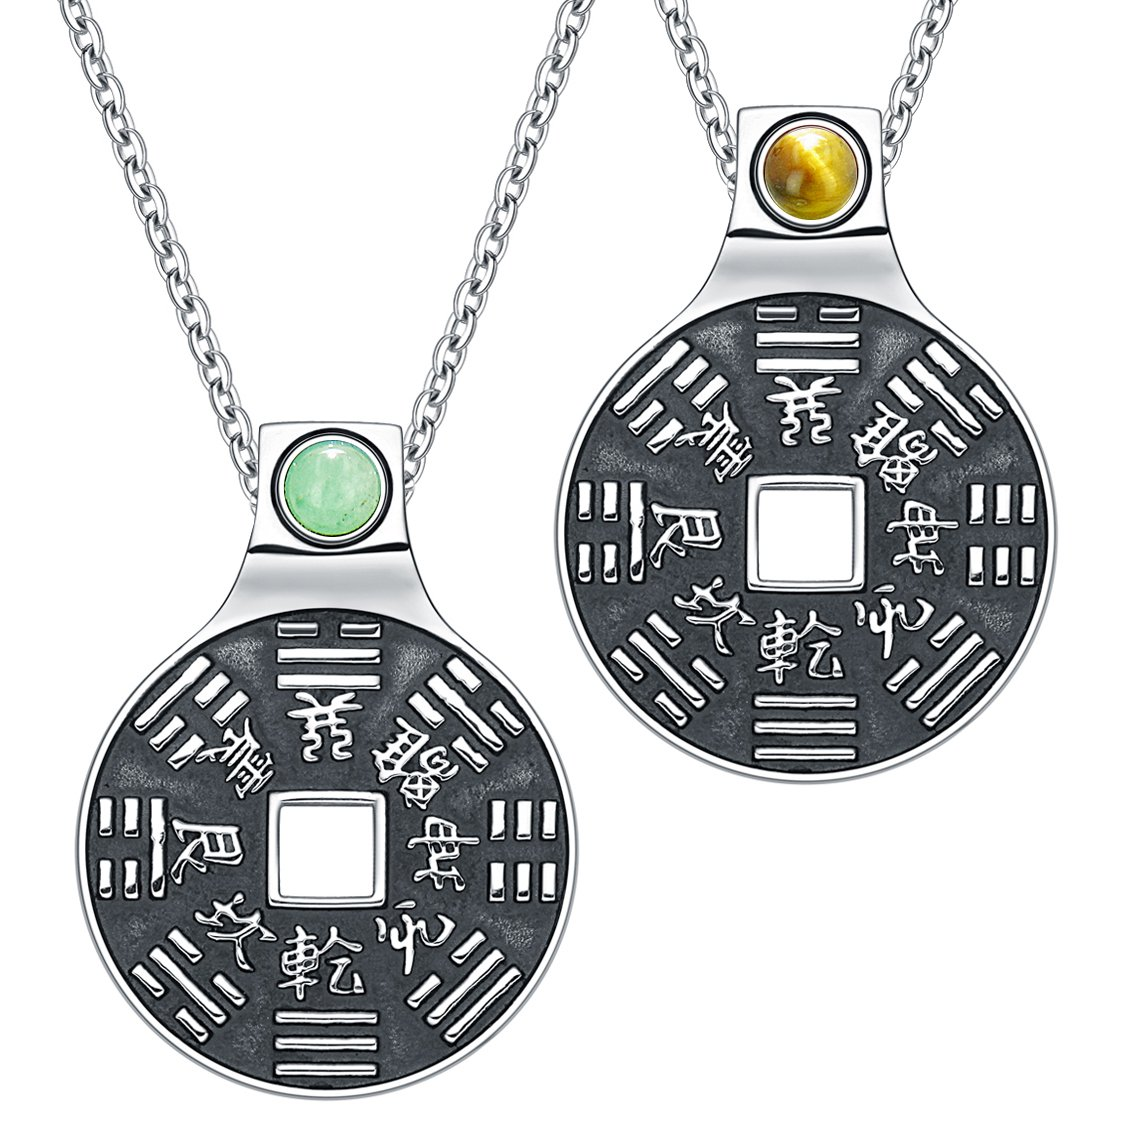 Yin Yang Amulets Love Couple BaGua Forces of Nature Lucky Coins Tiger Eye Green Quartz Necklaces